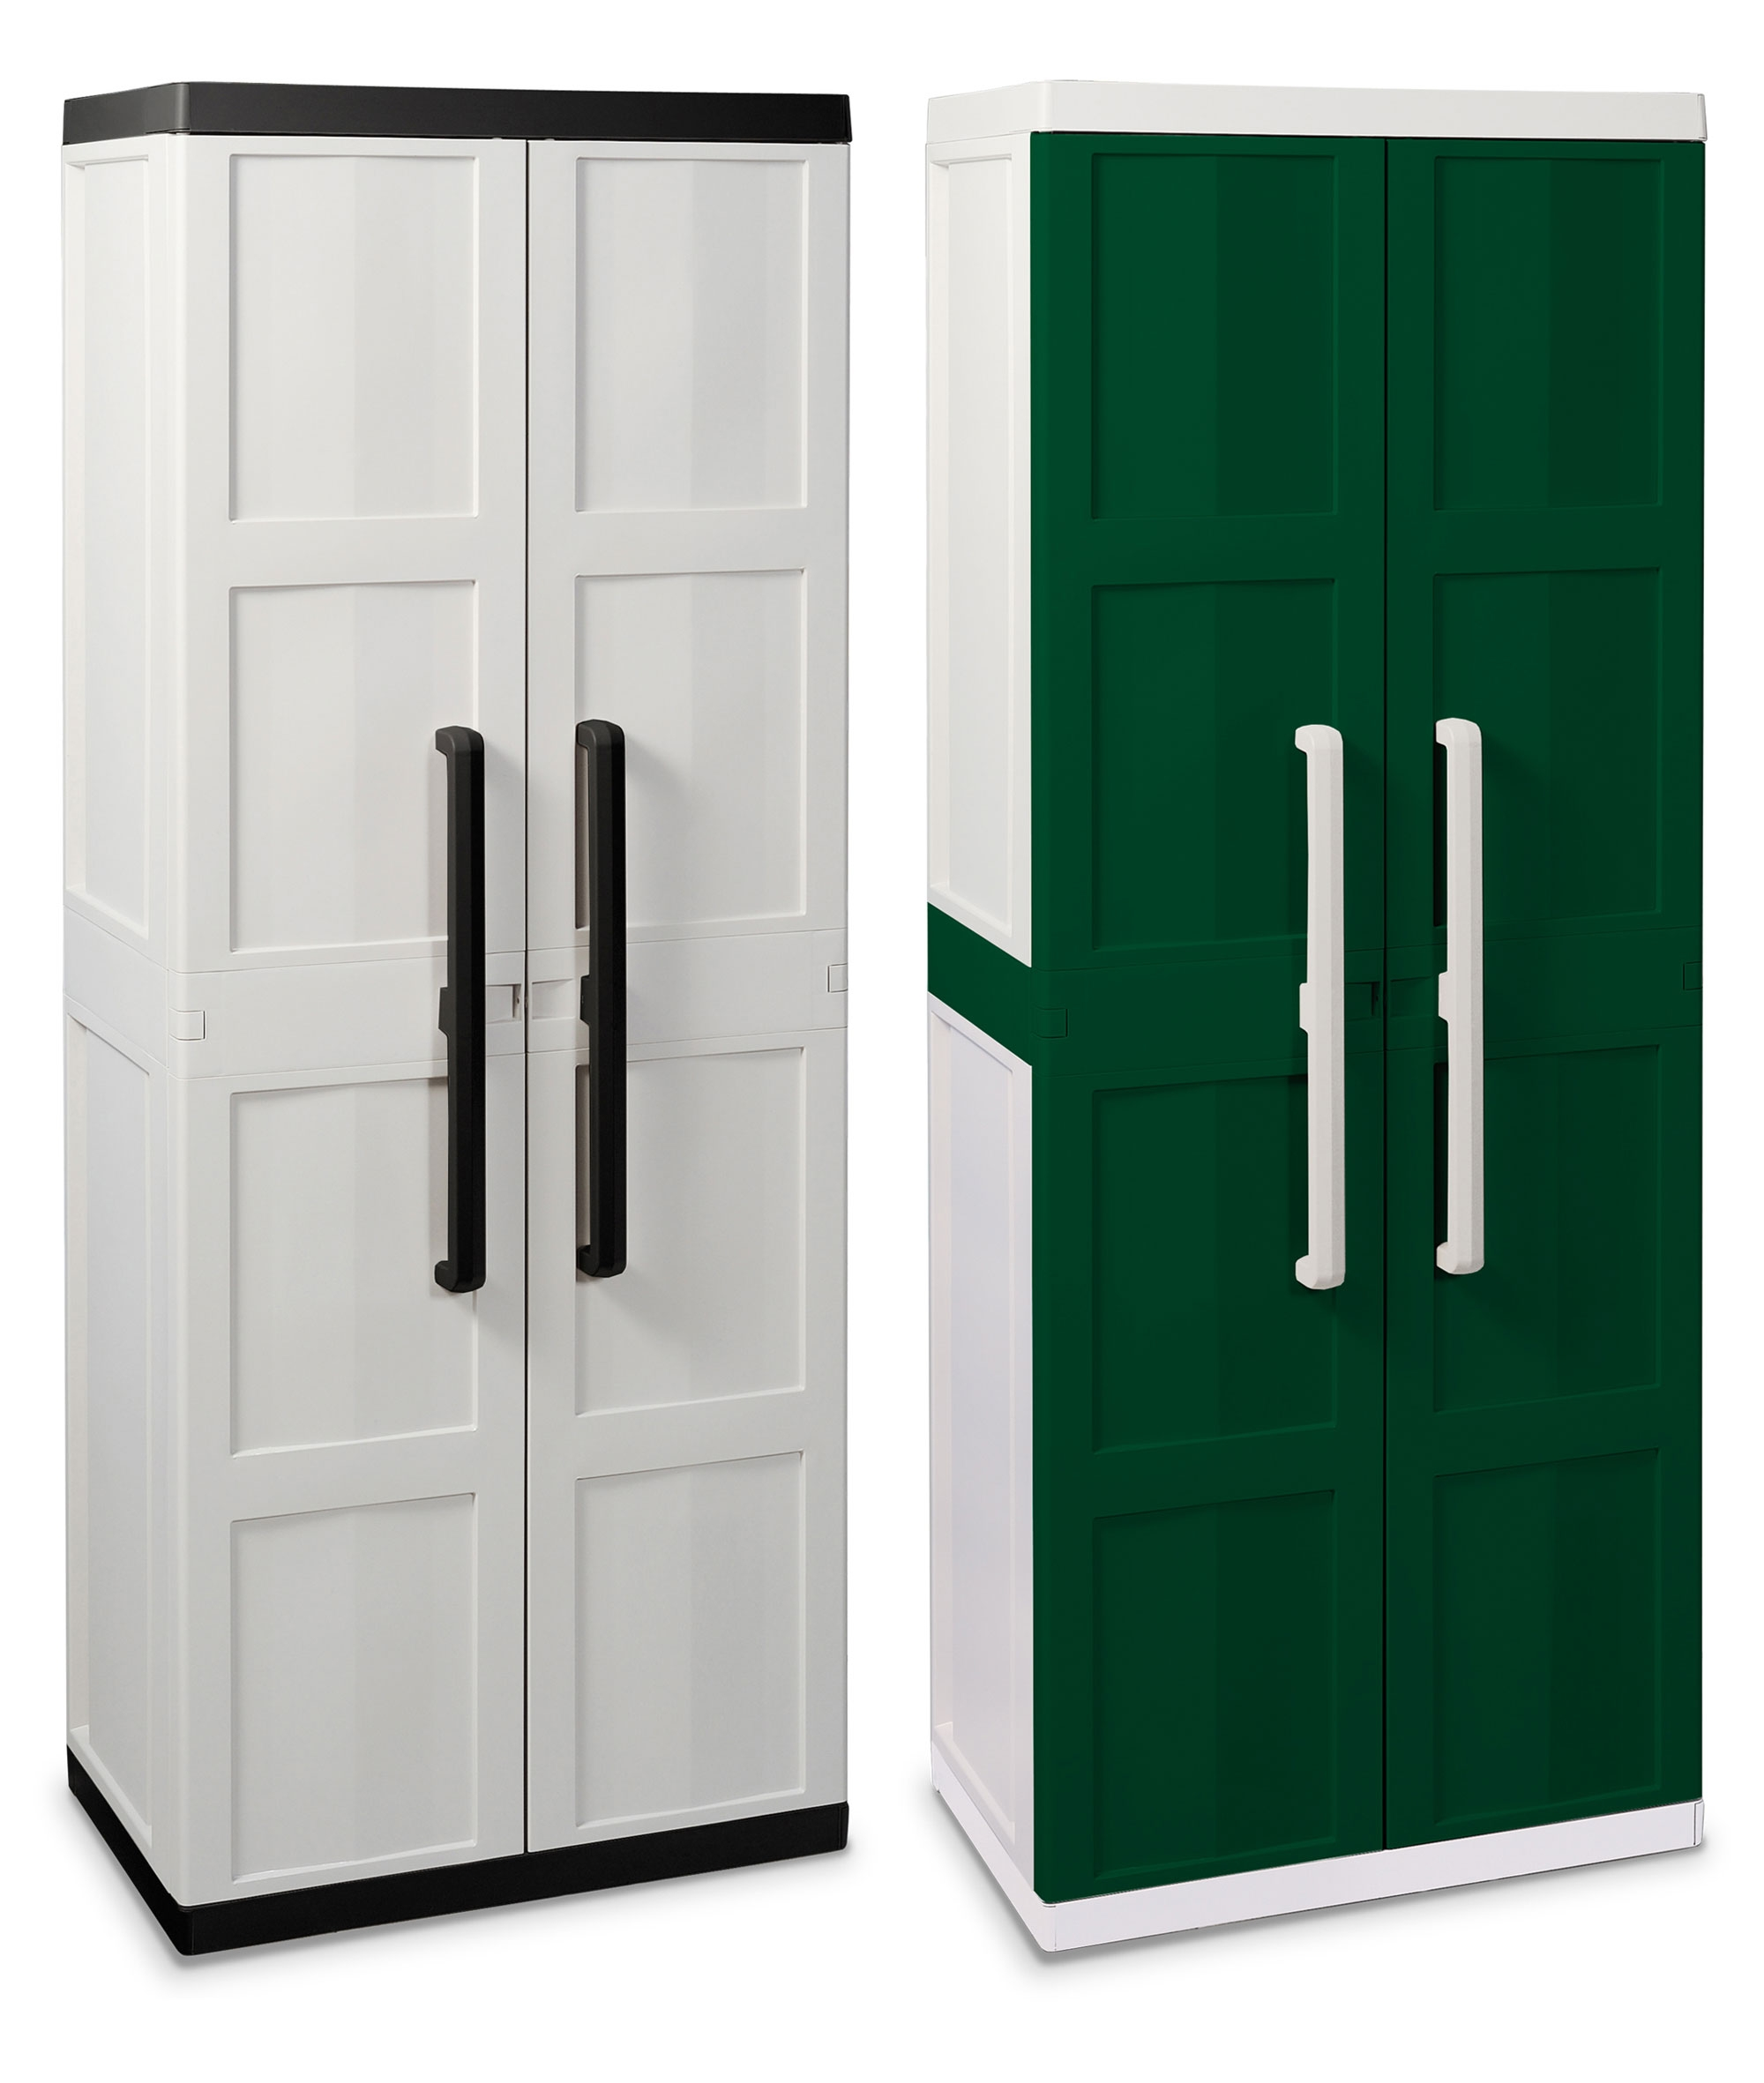 Tall Plastic Storage Cabinet With Doors